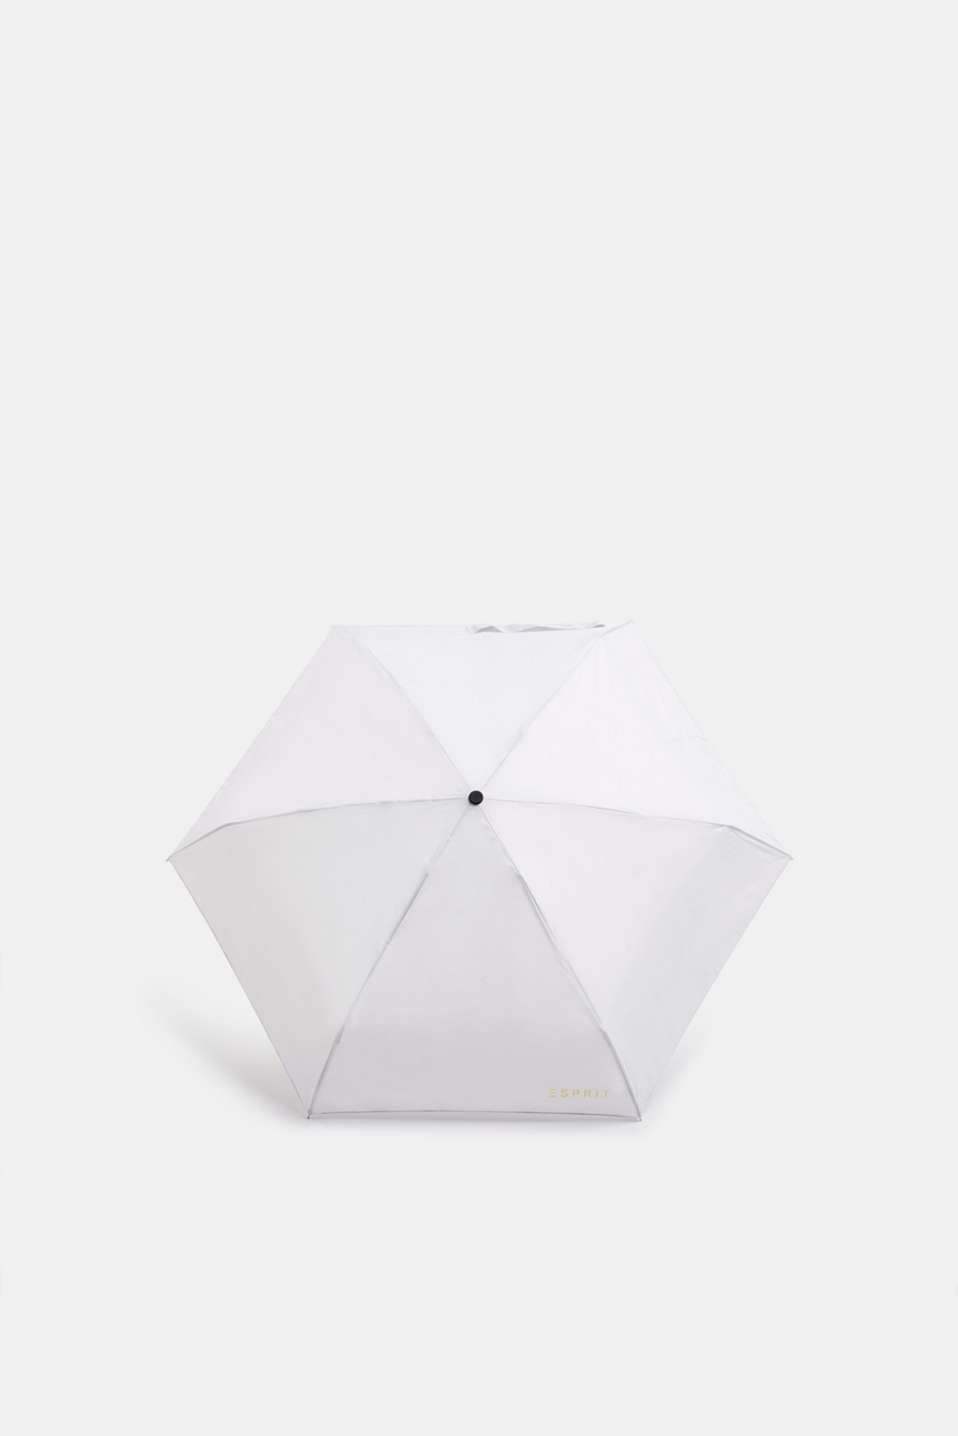 Esprit - Mini pocket-sized umbrella